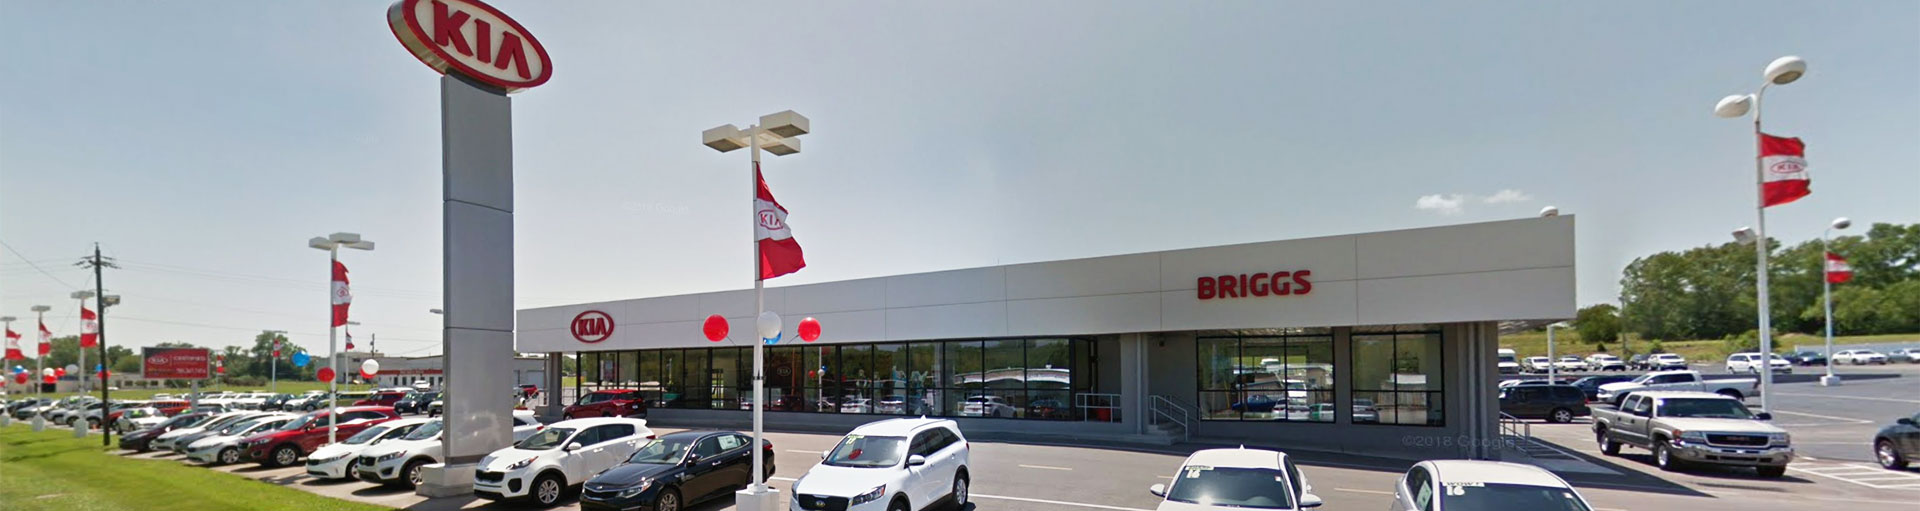 Briggs Kia Dealership in Topeka, KS